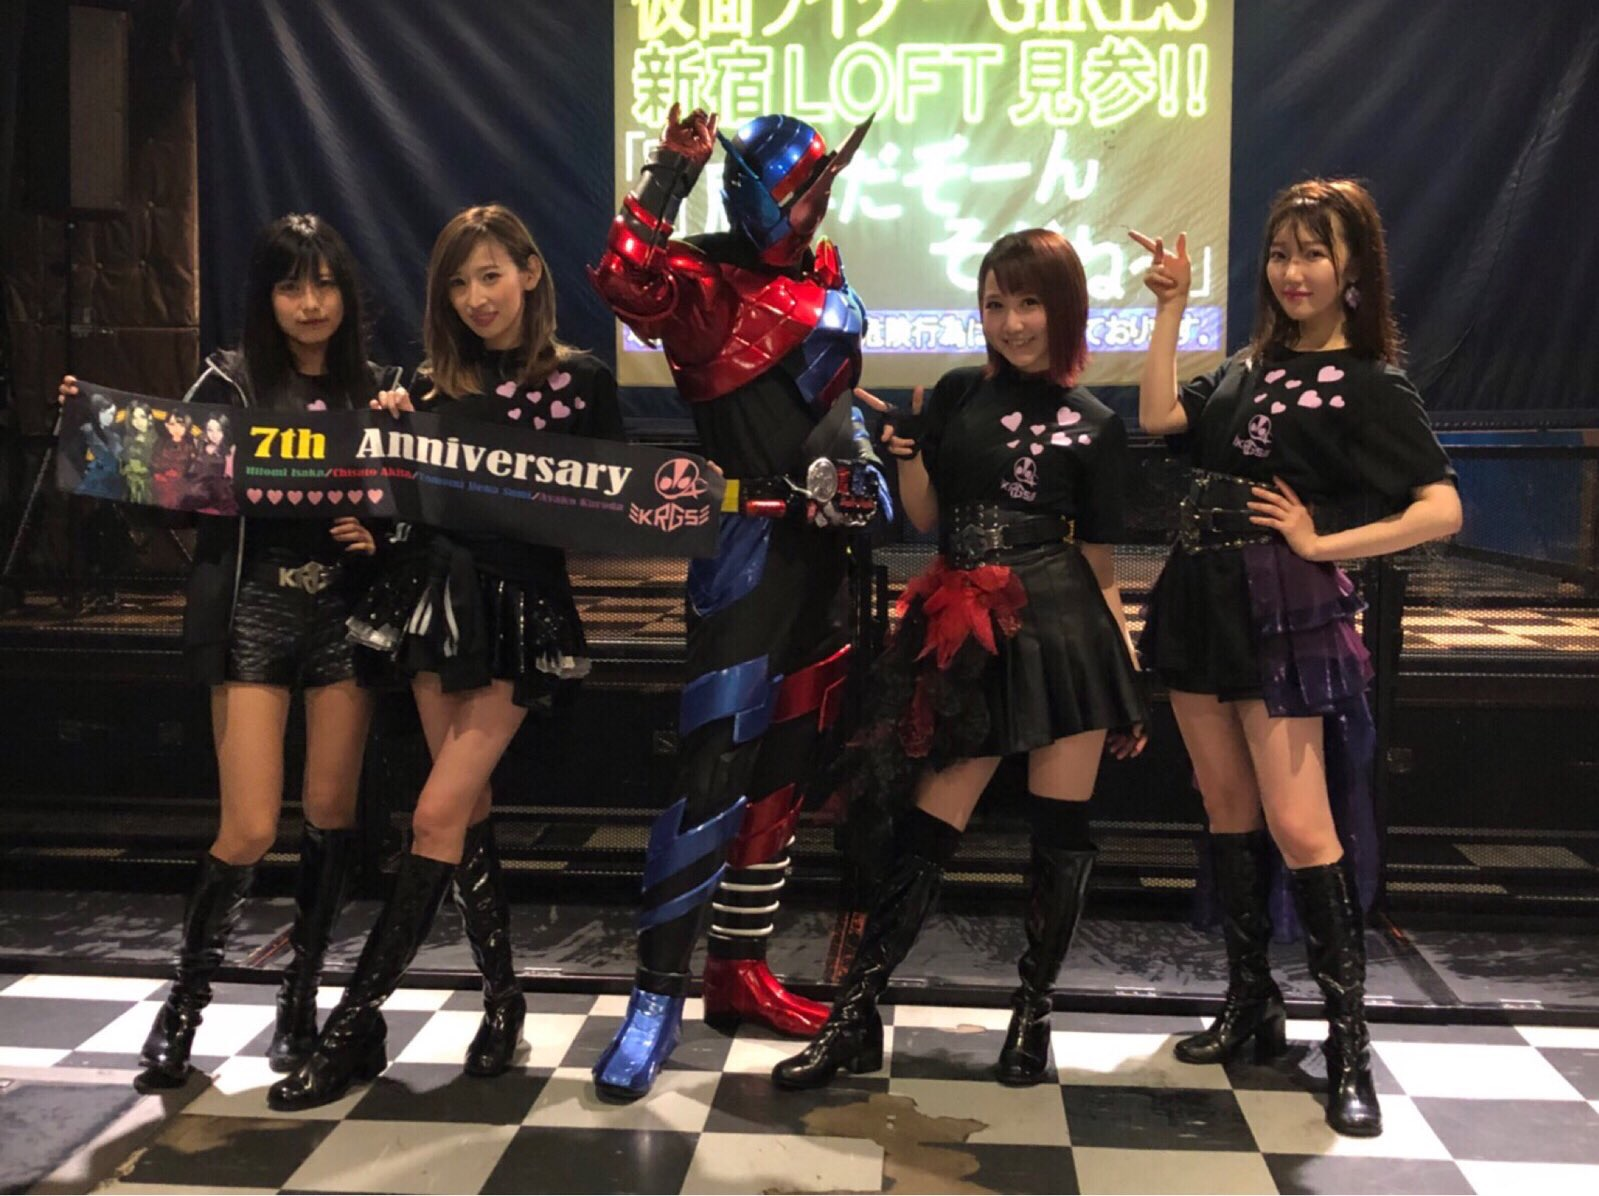 Kamen Rider Girls to Perform Kamen Rider Build's Newest Insert Theme